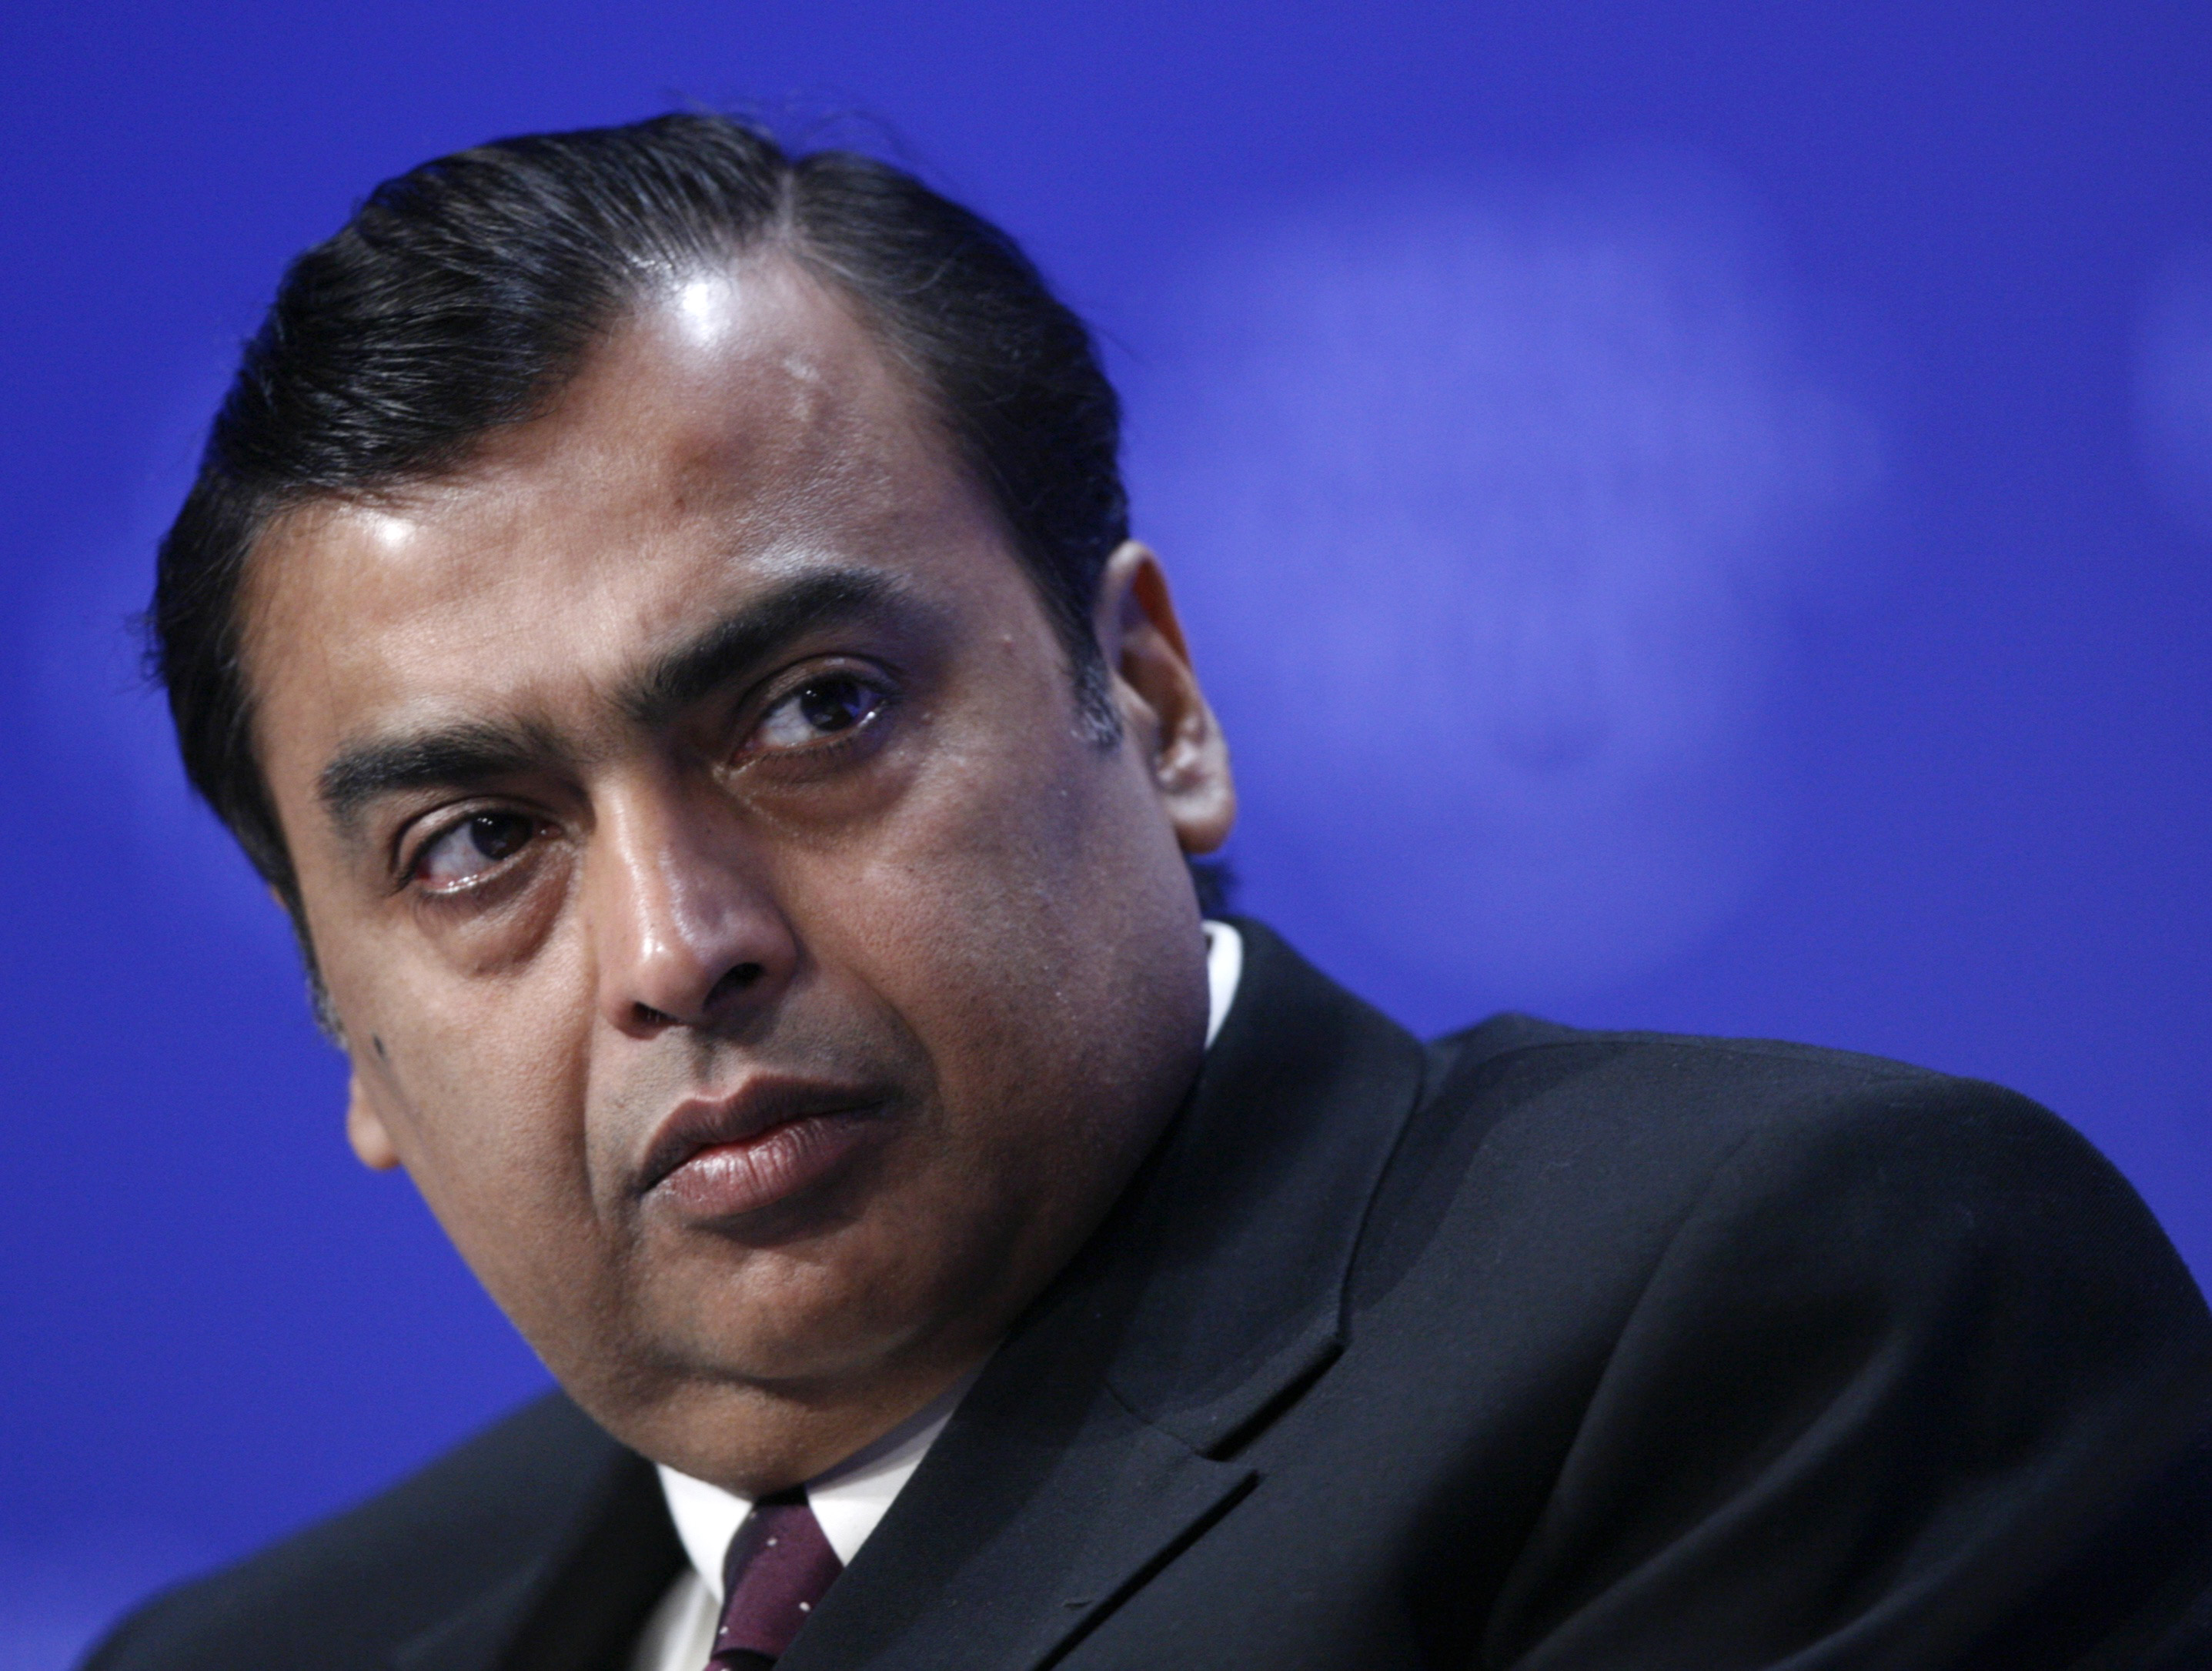 Reliance Industries to invest $39B in digital space